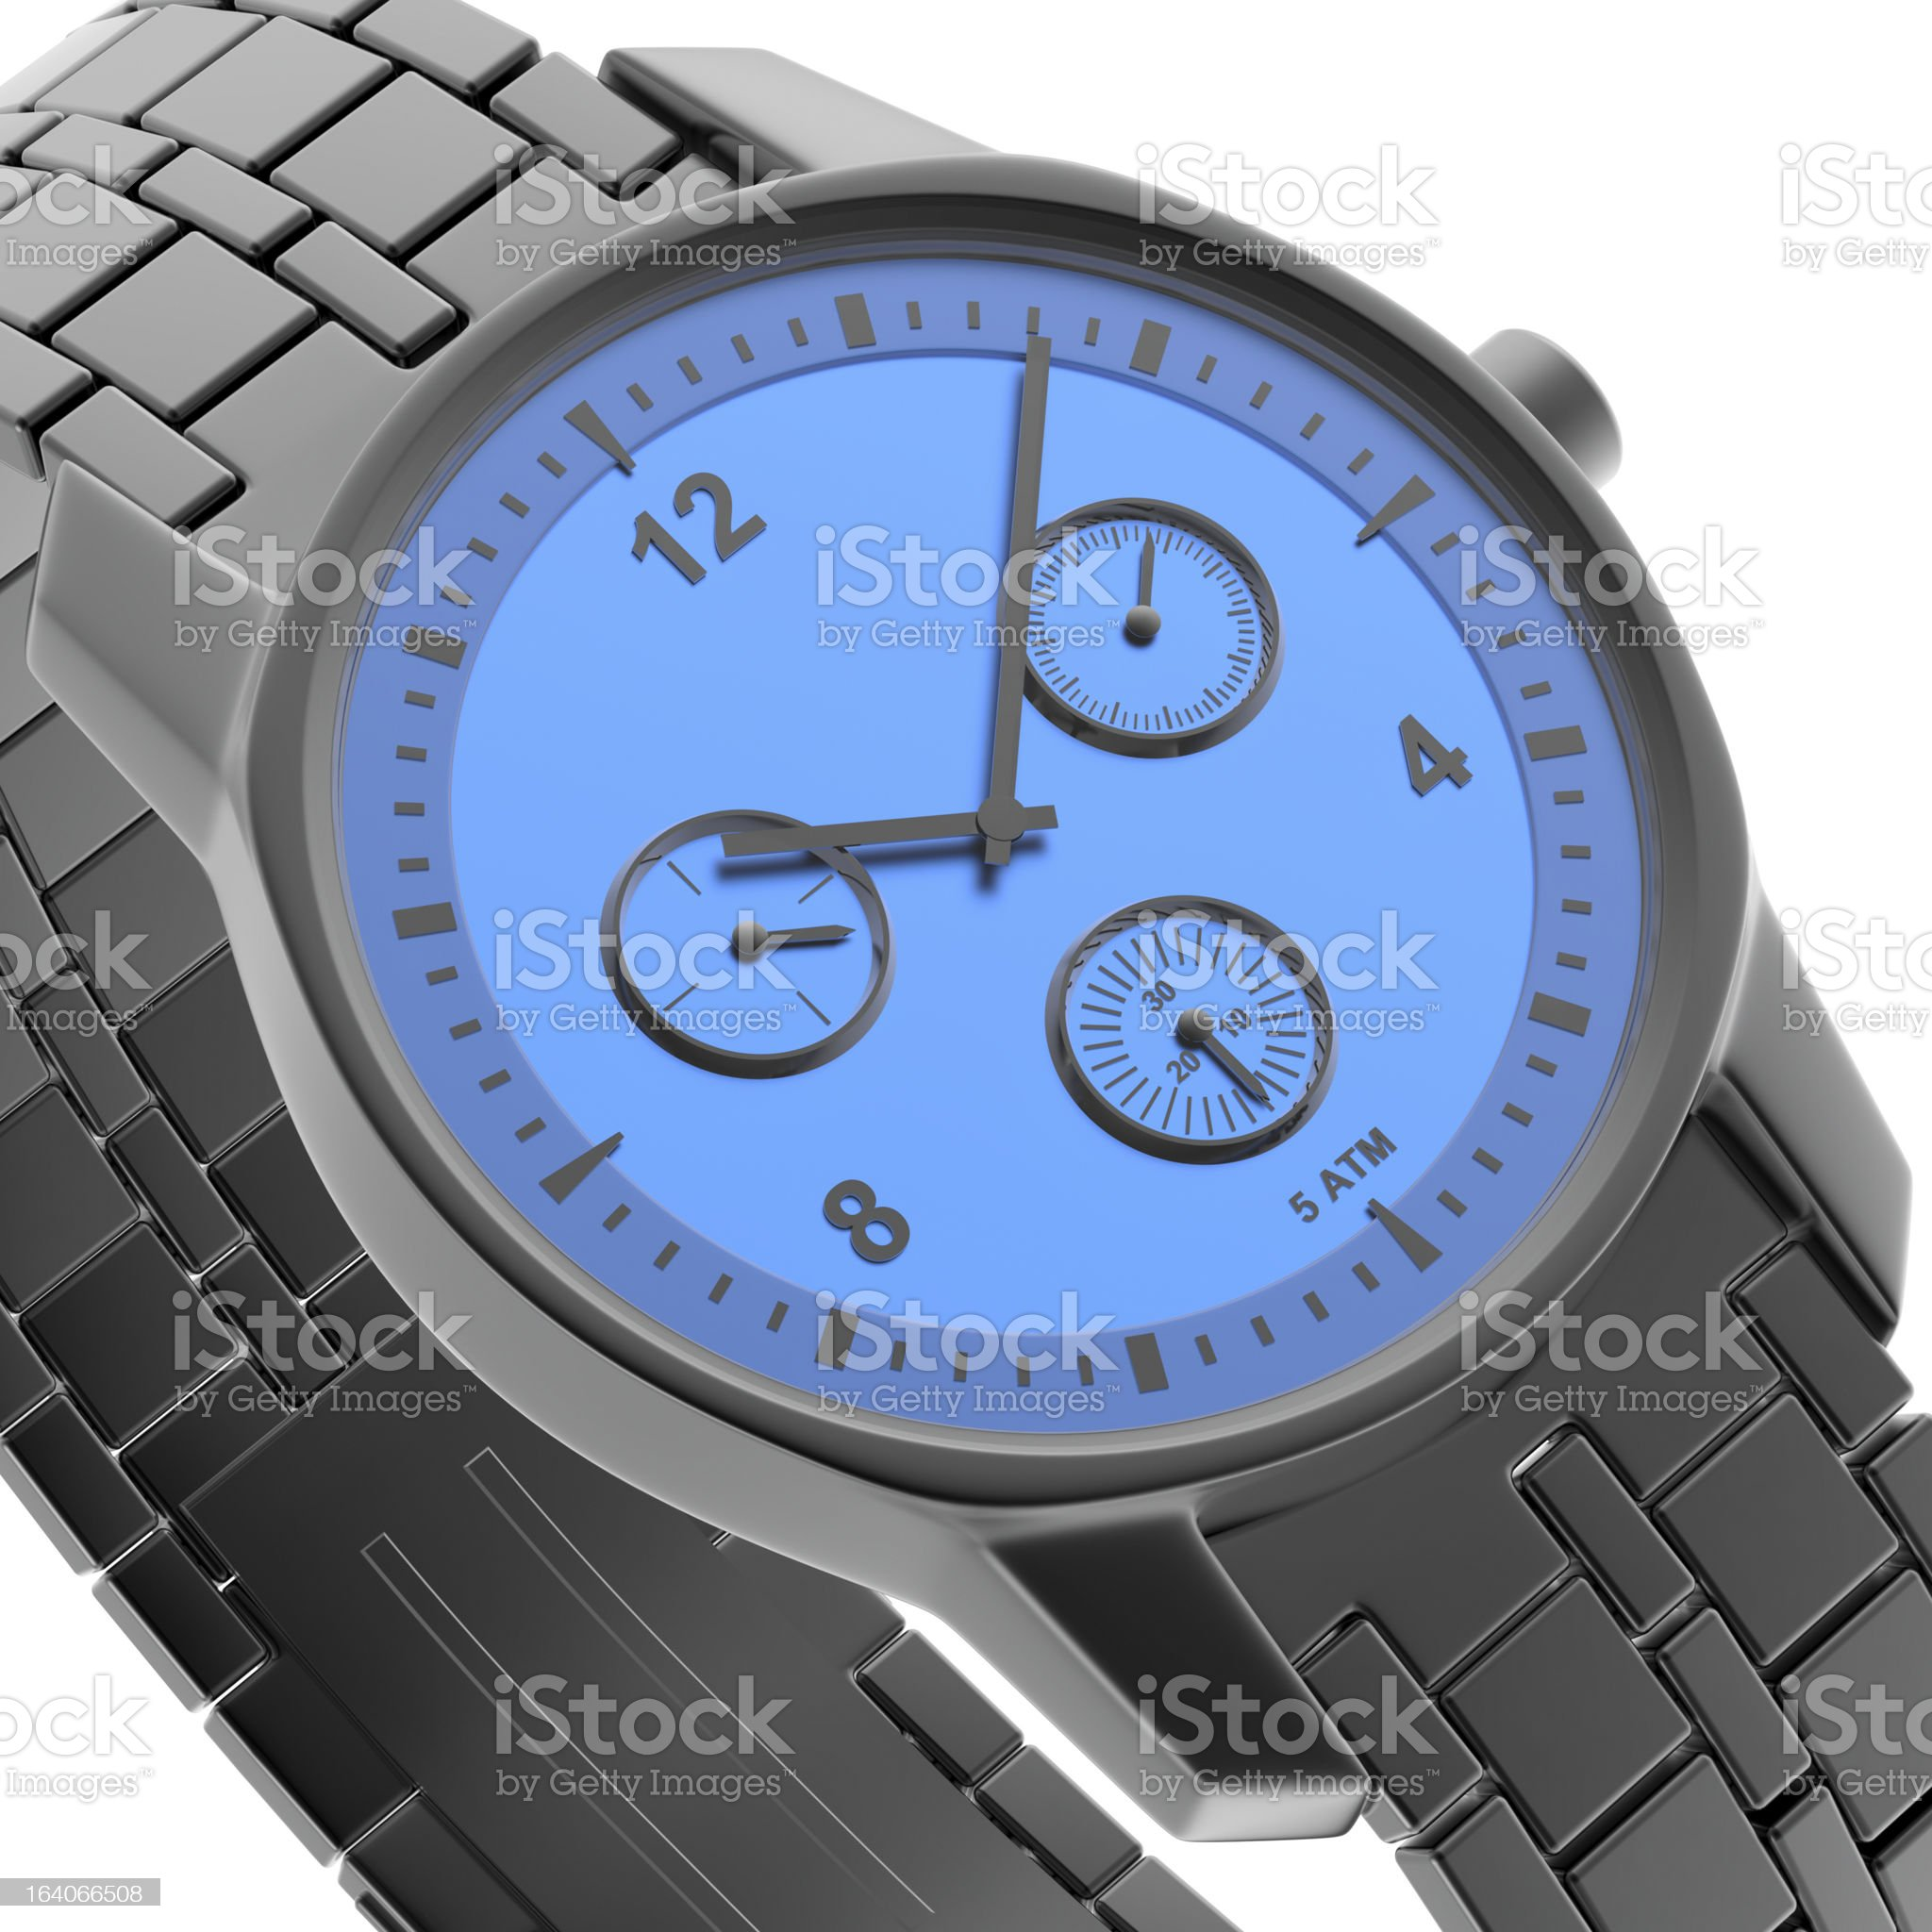 Close-up view of watch royalty-free stock photo